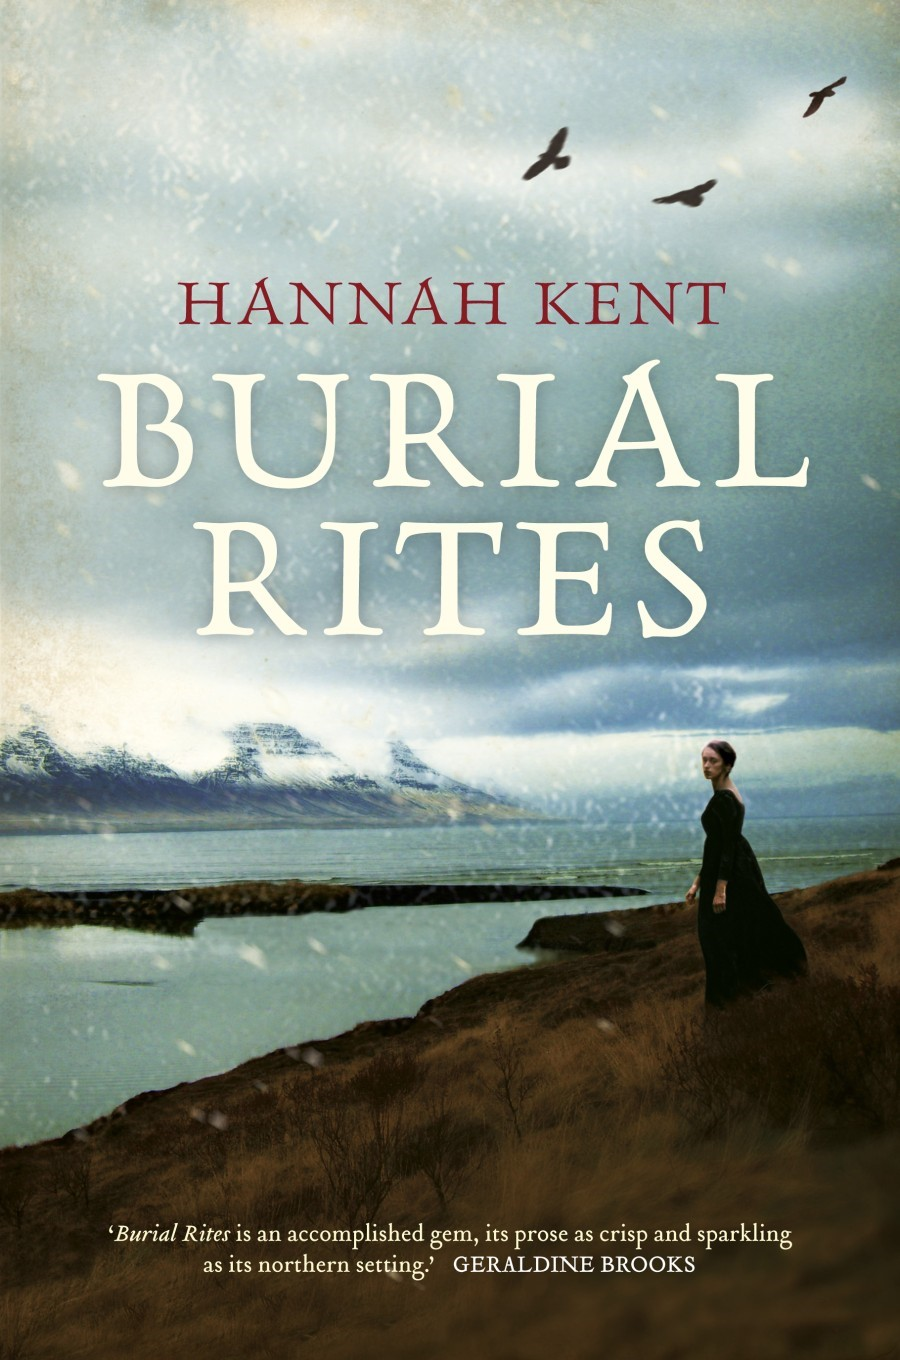 hannah kent burial rites review